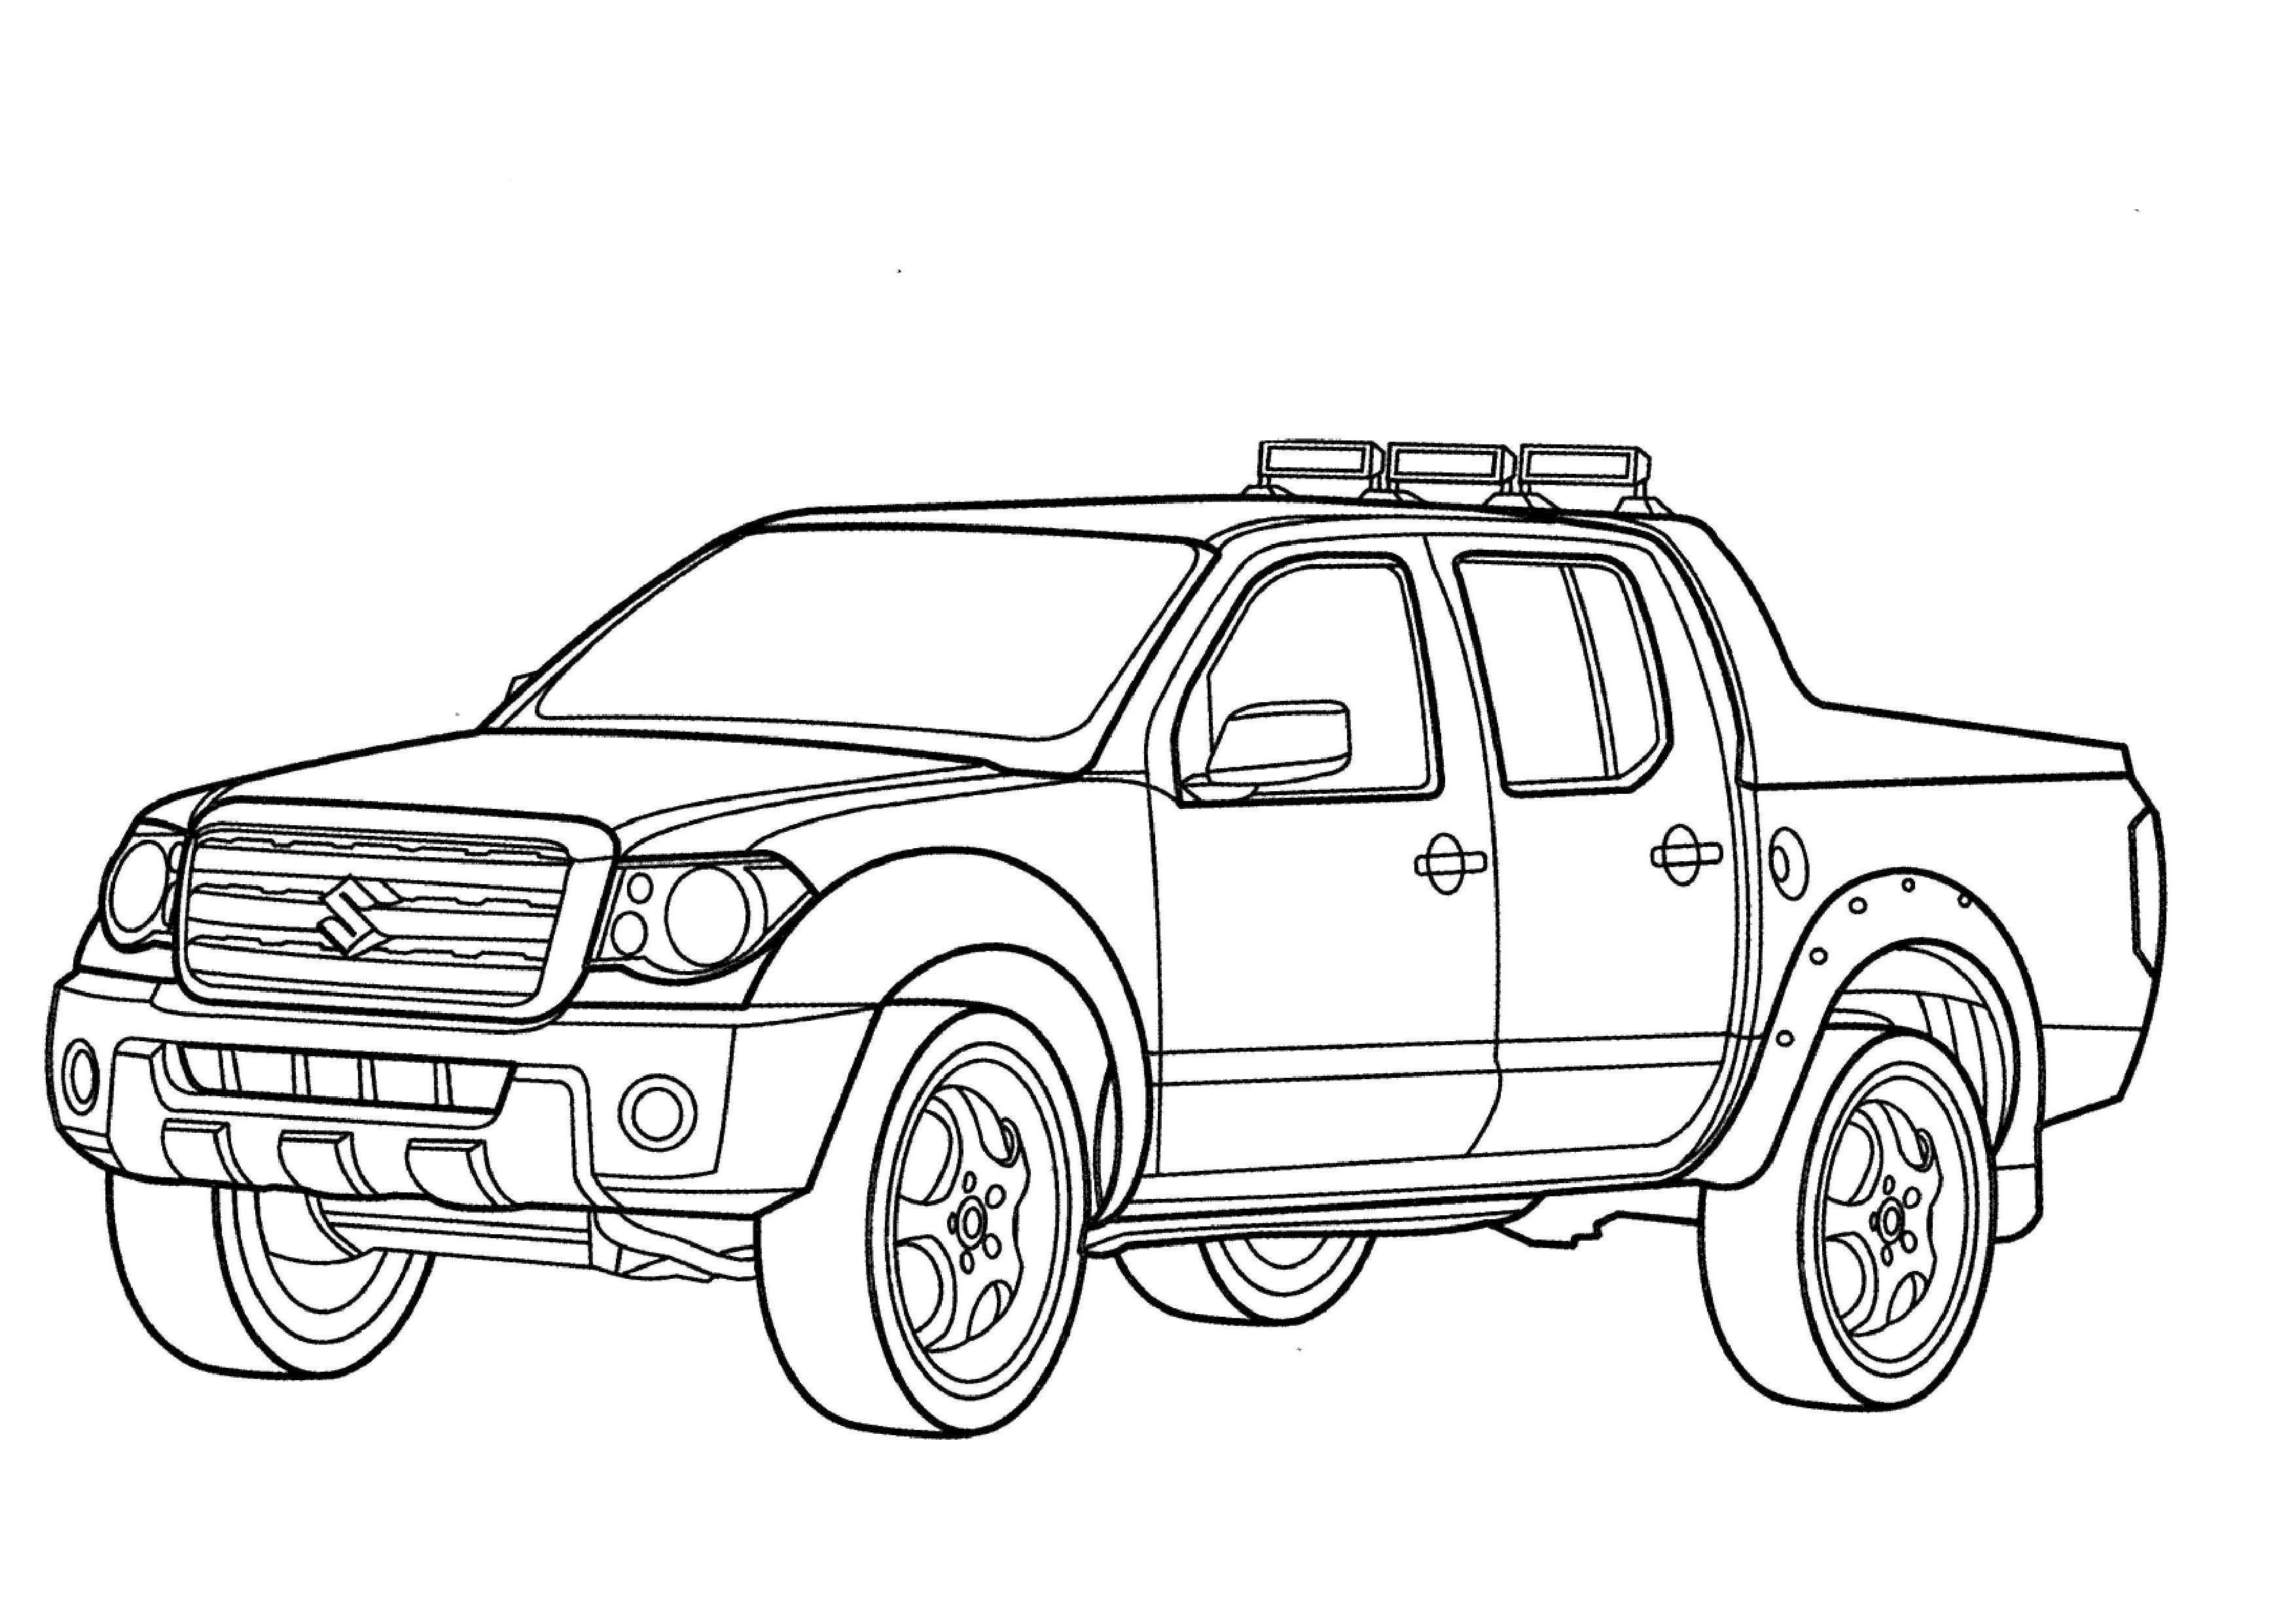 Best Equator Cars Truck Coloring Pages Cars Coloring Pages